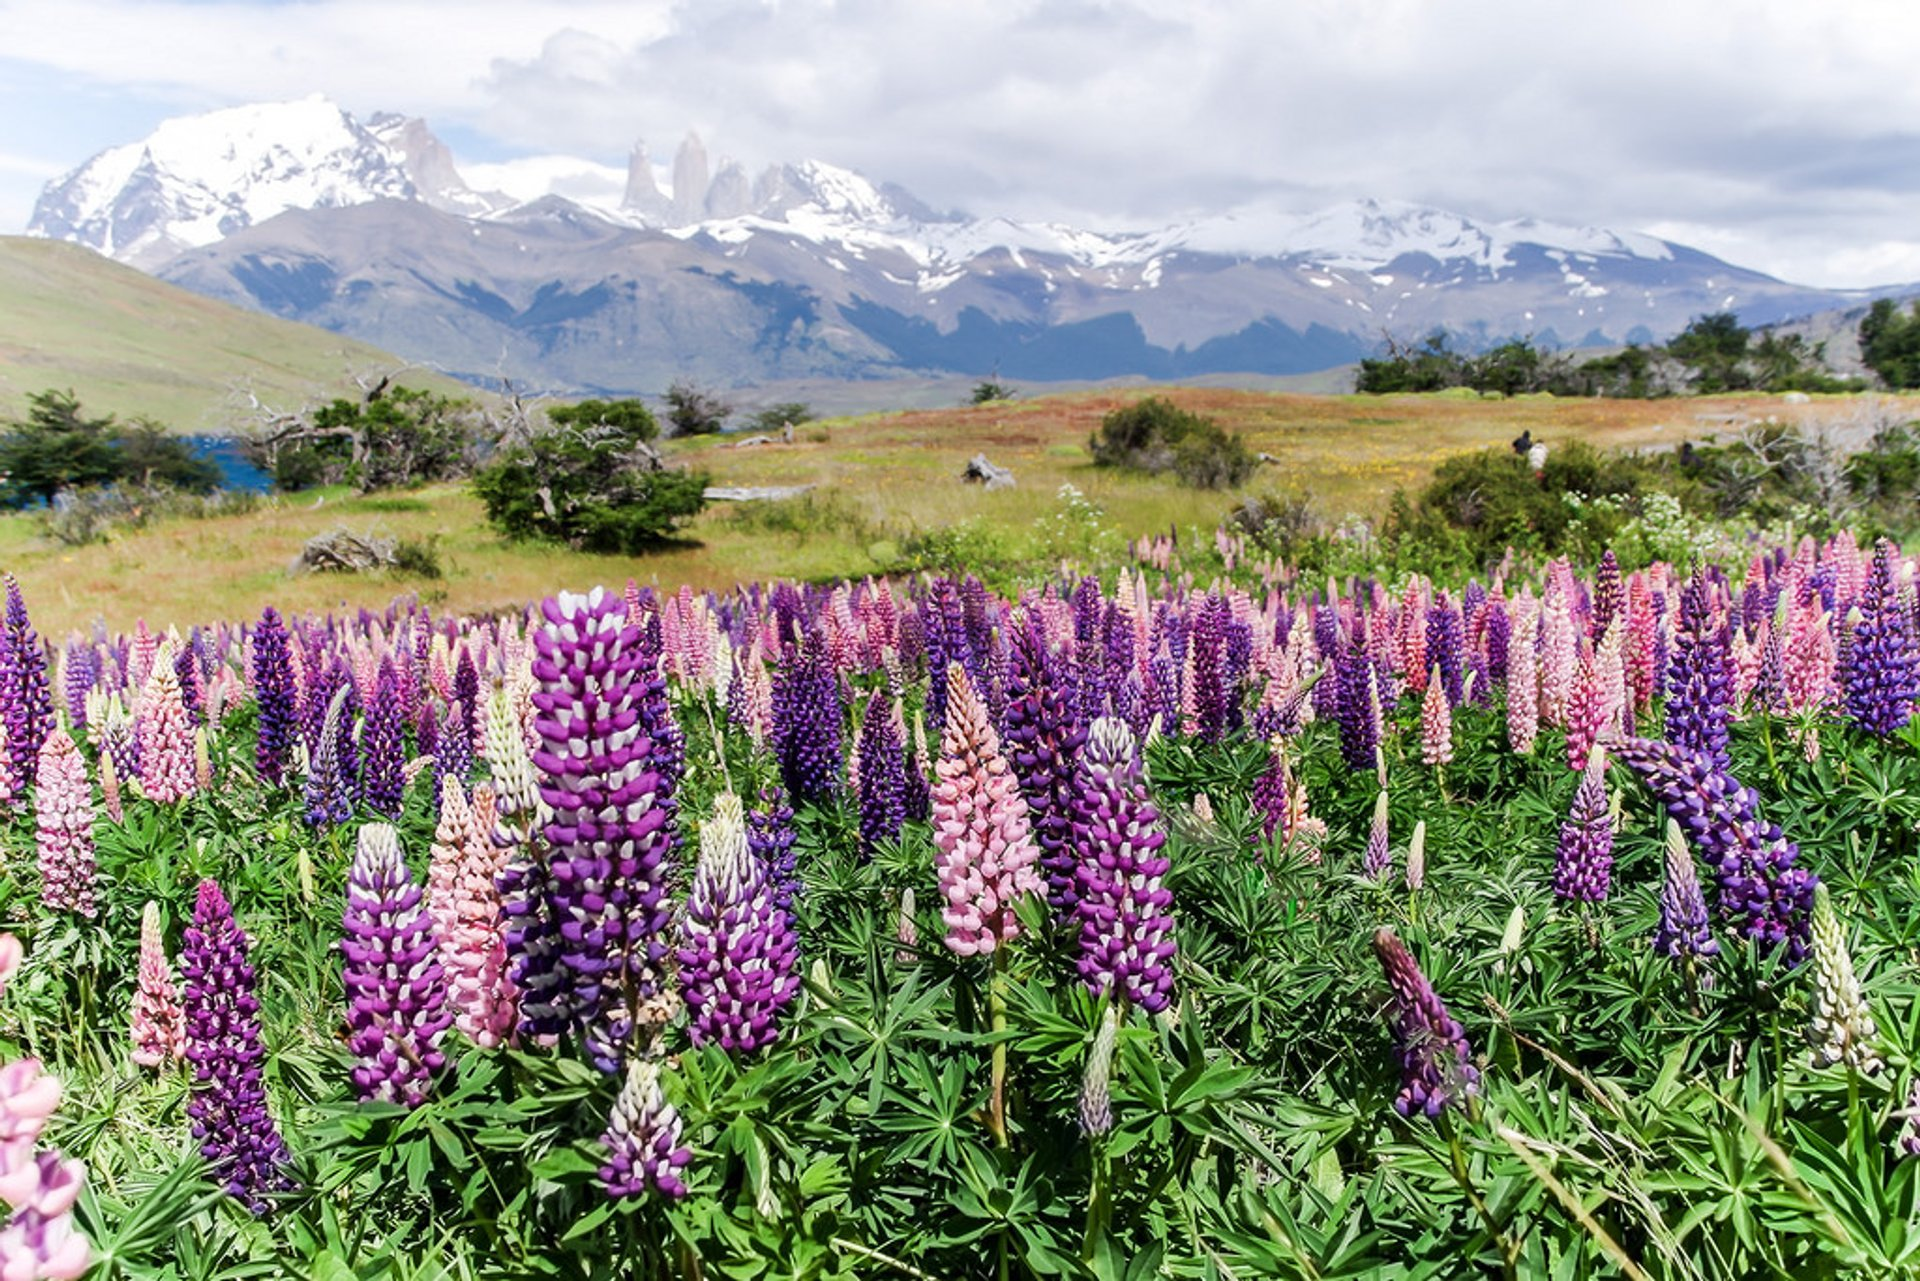 Lupin Blooming in Patagonia 2020 - Best Time